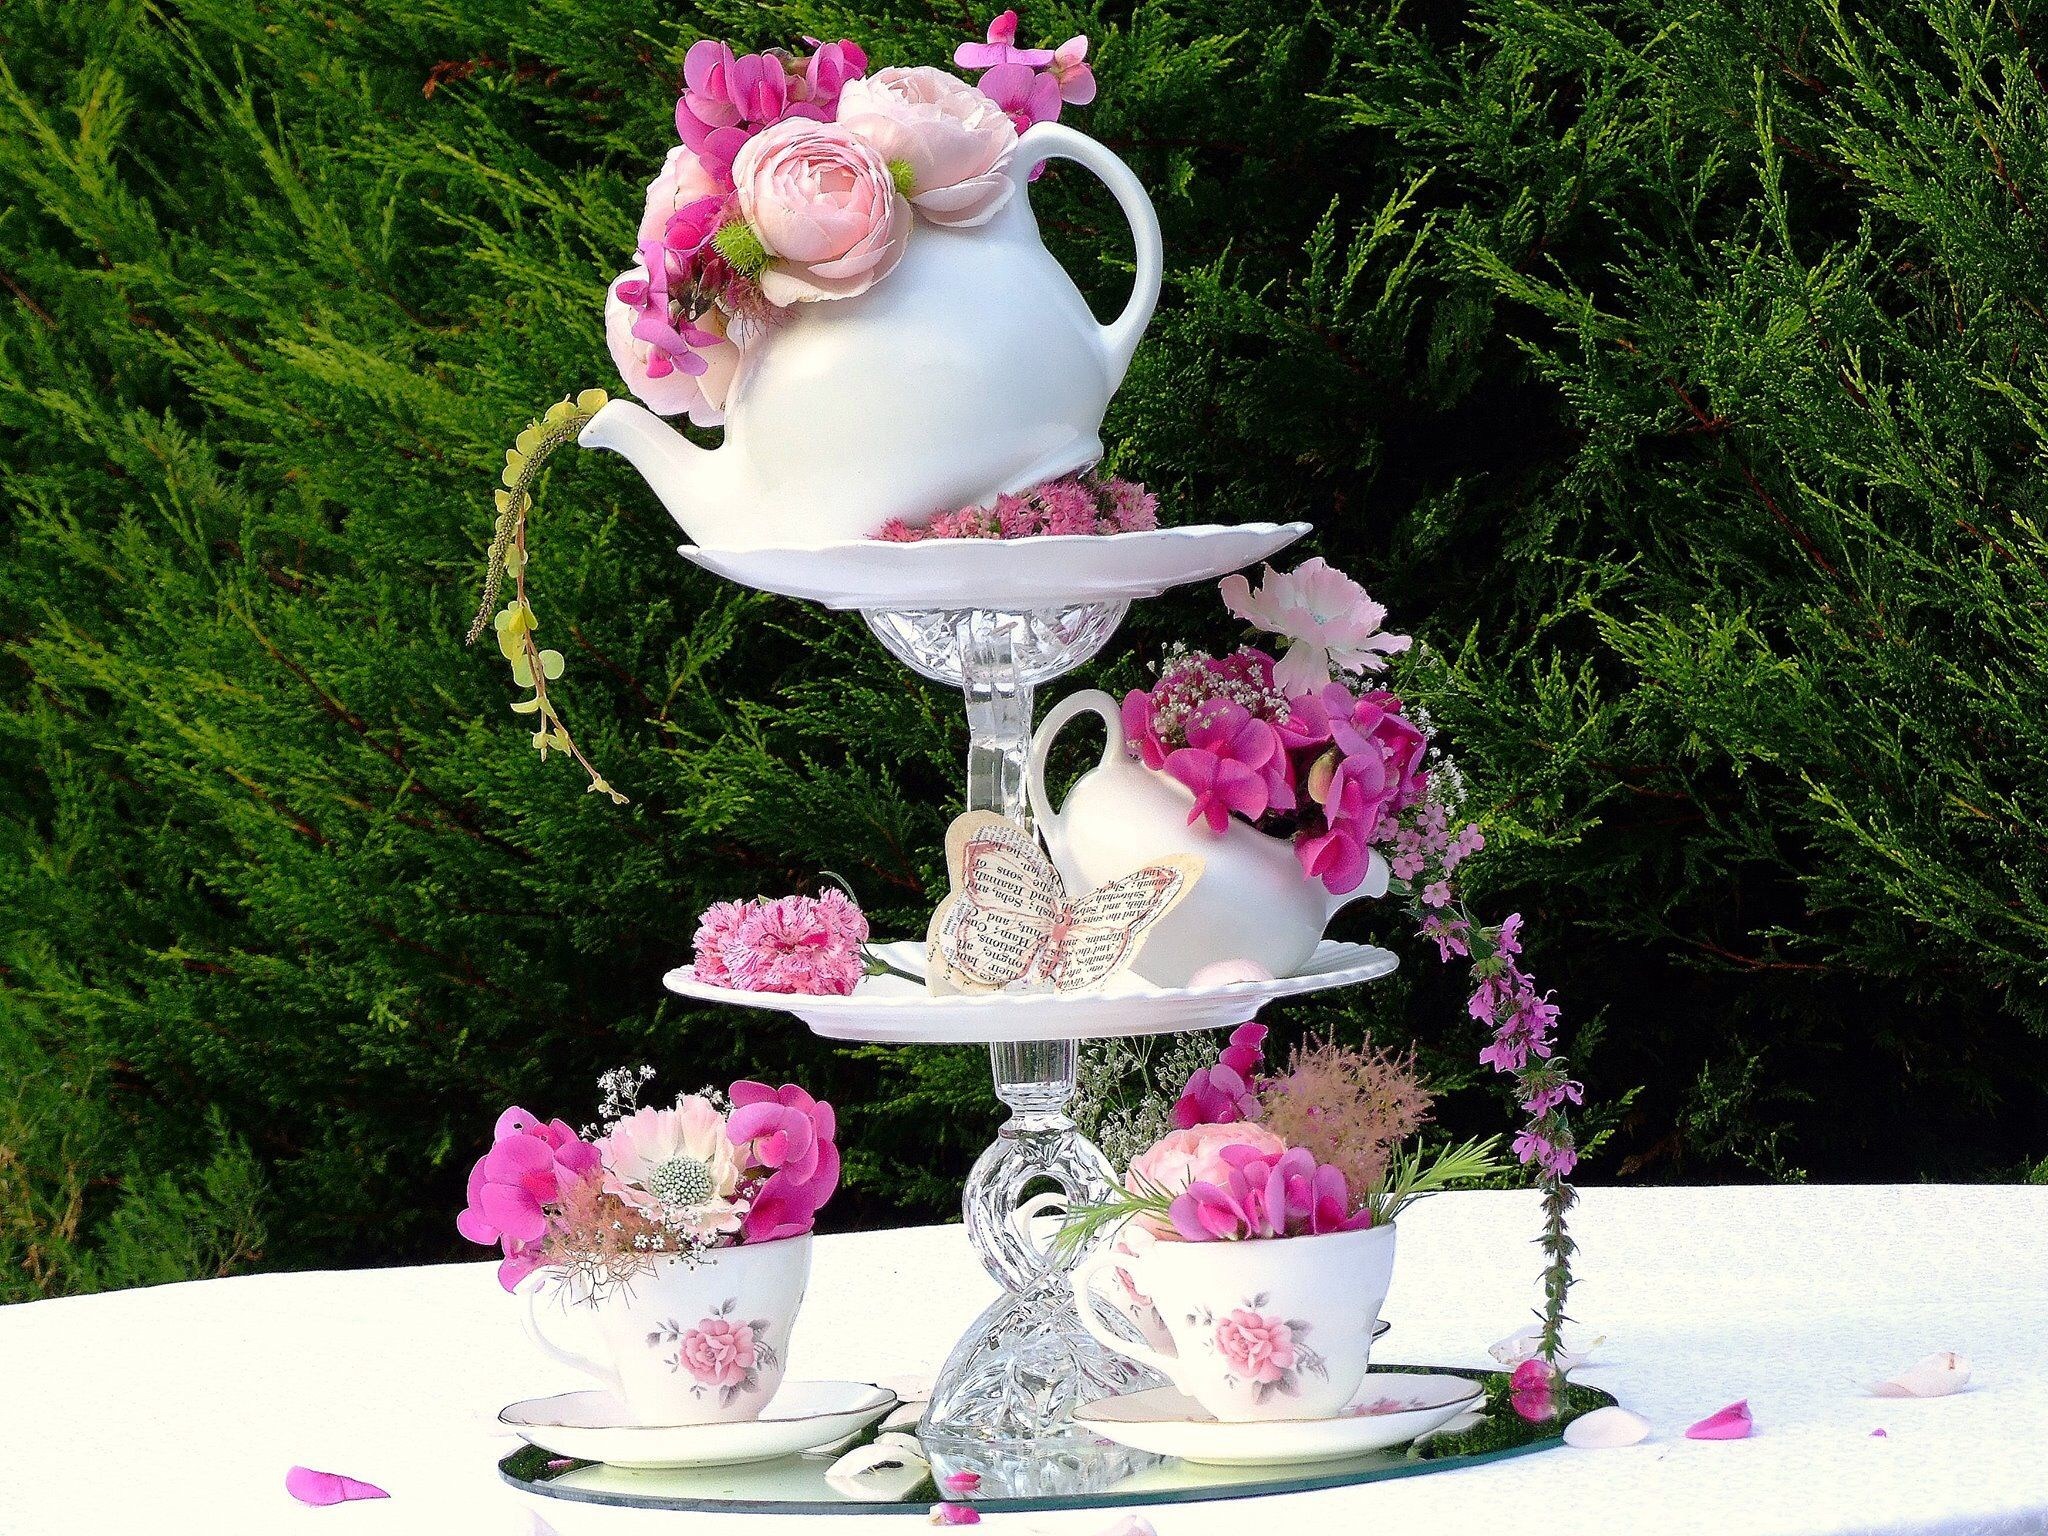 Topsy turvy wedding centre piece from sweetpea and ivy for Antique decoration pieces